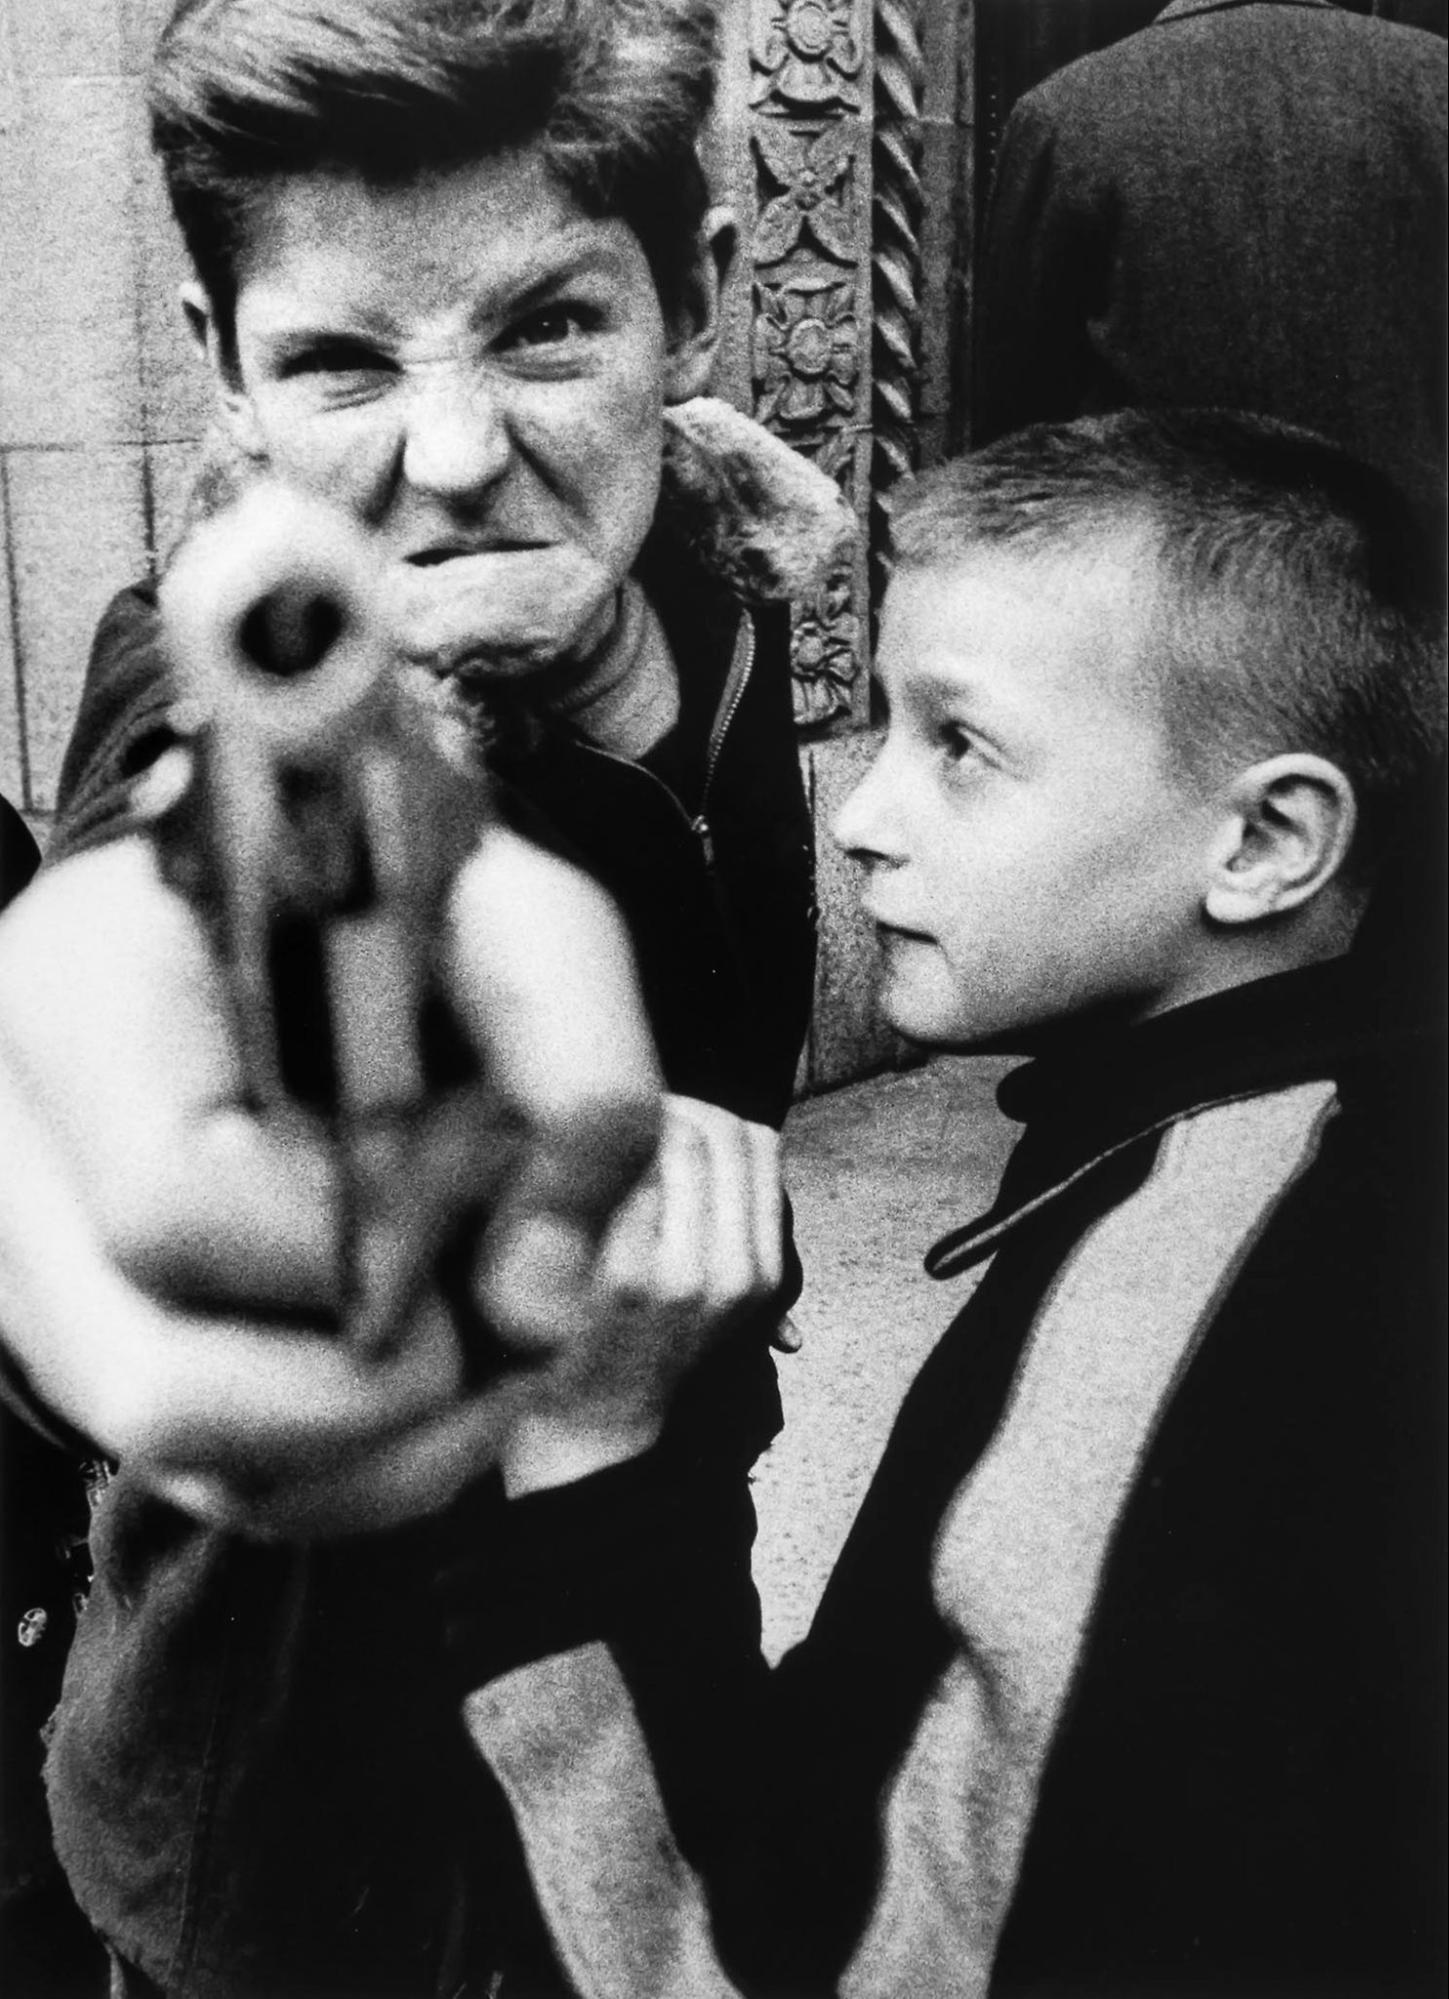 Gun 1, Nueva York, EE. UU., 1954 © William Klein